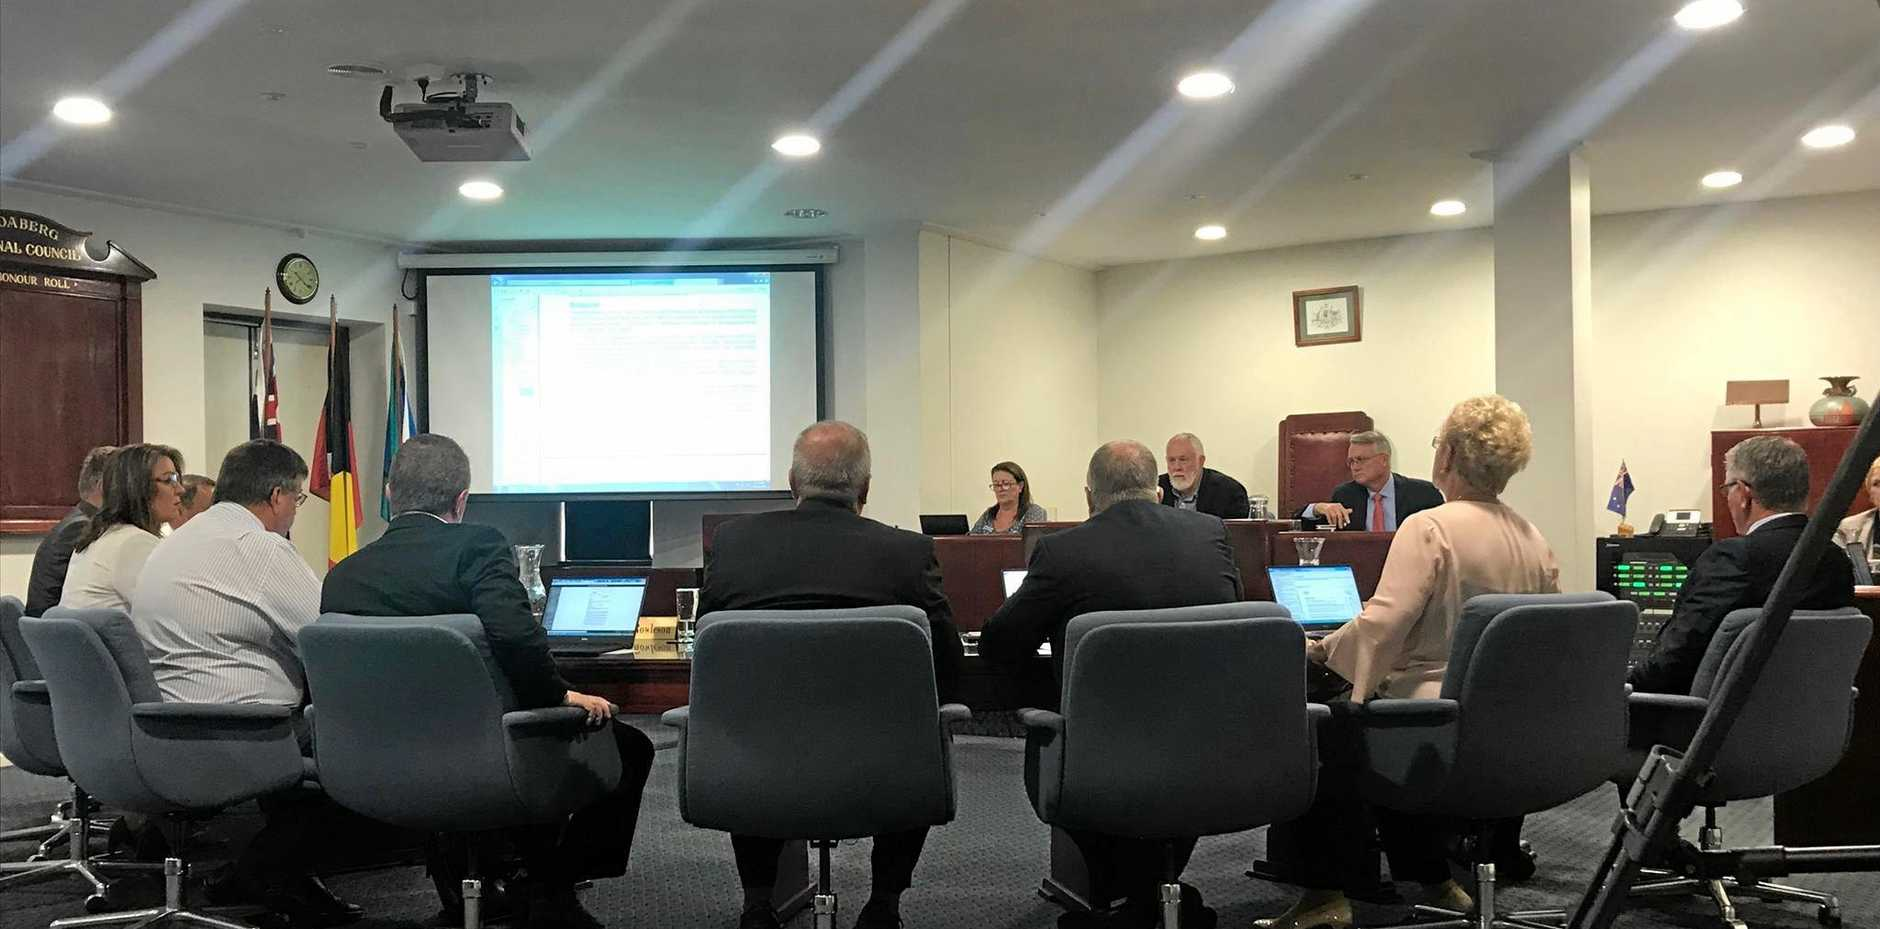 COUNCIL MEETING: On tomorrow's agenda councillors will discuss the future use of the council's Bargara Administration Building and Cultural Centre.